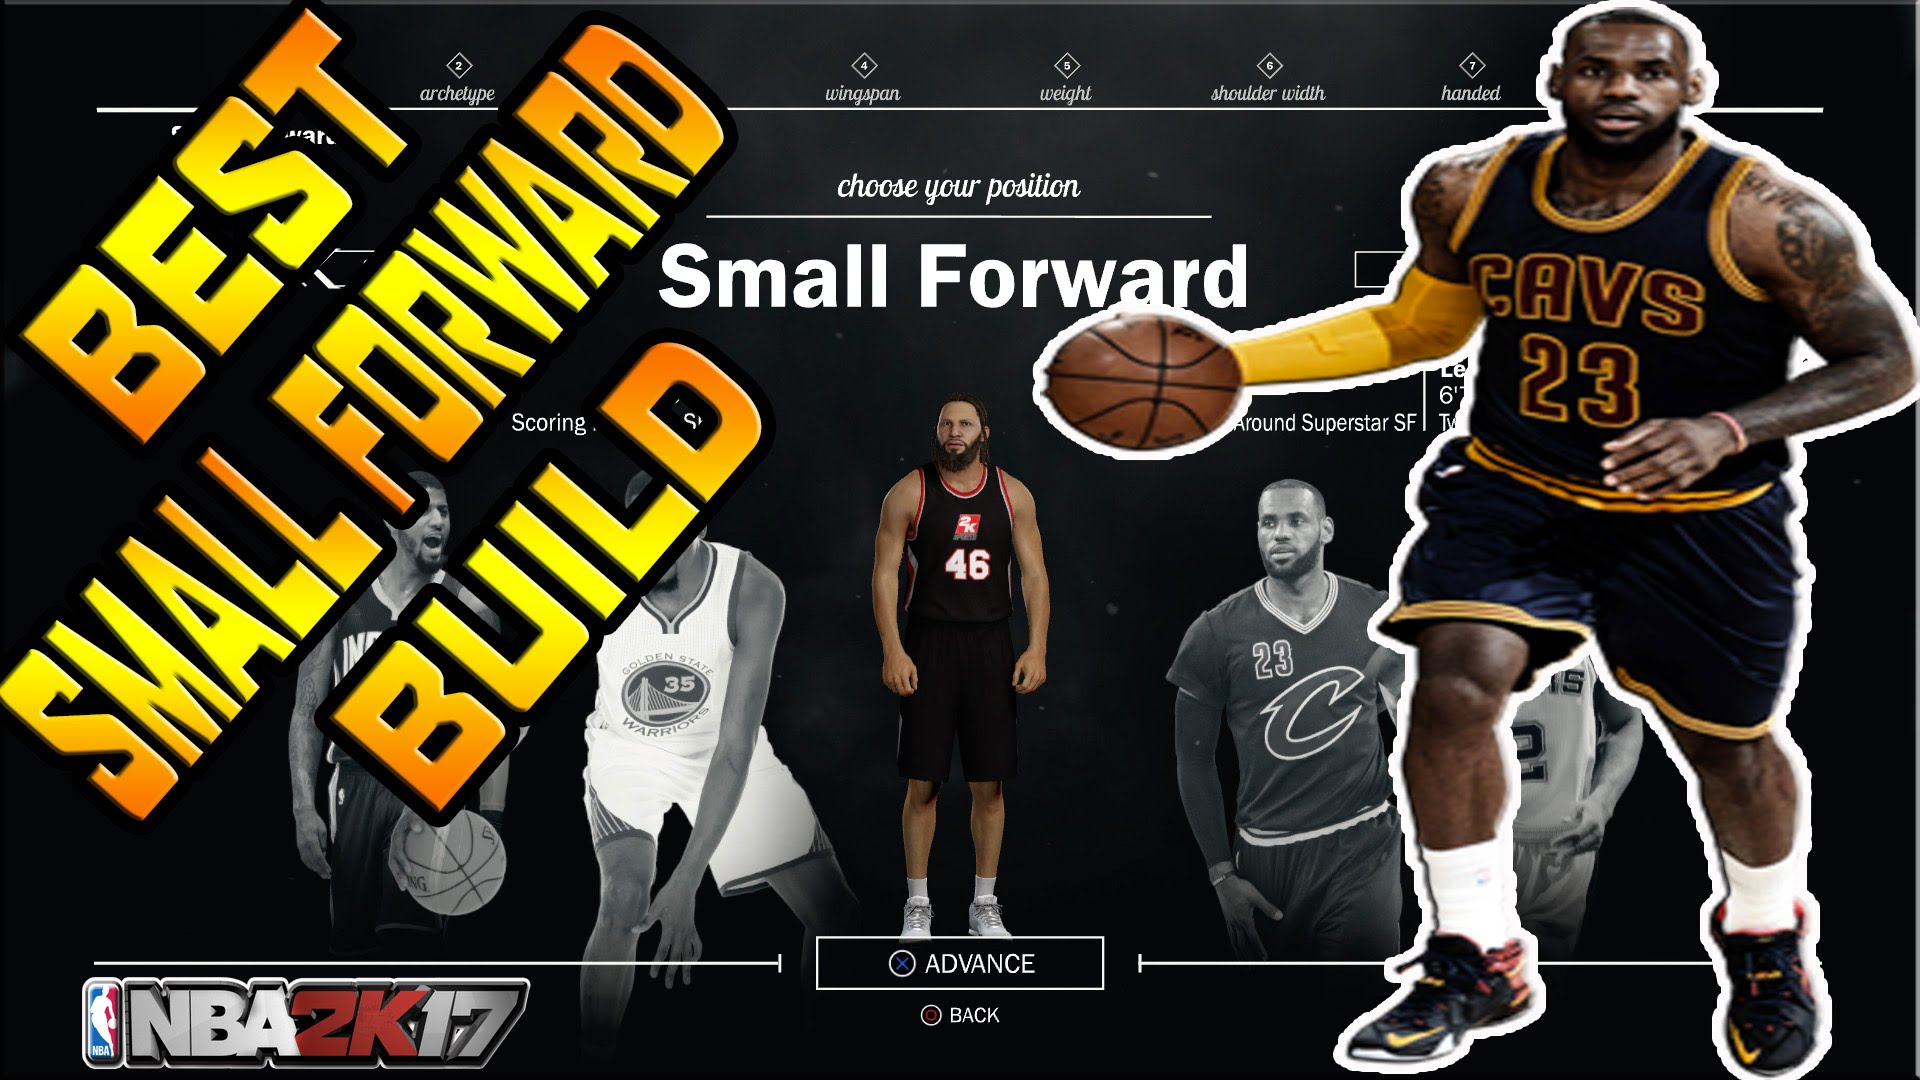 nba 2k17 small forward build